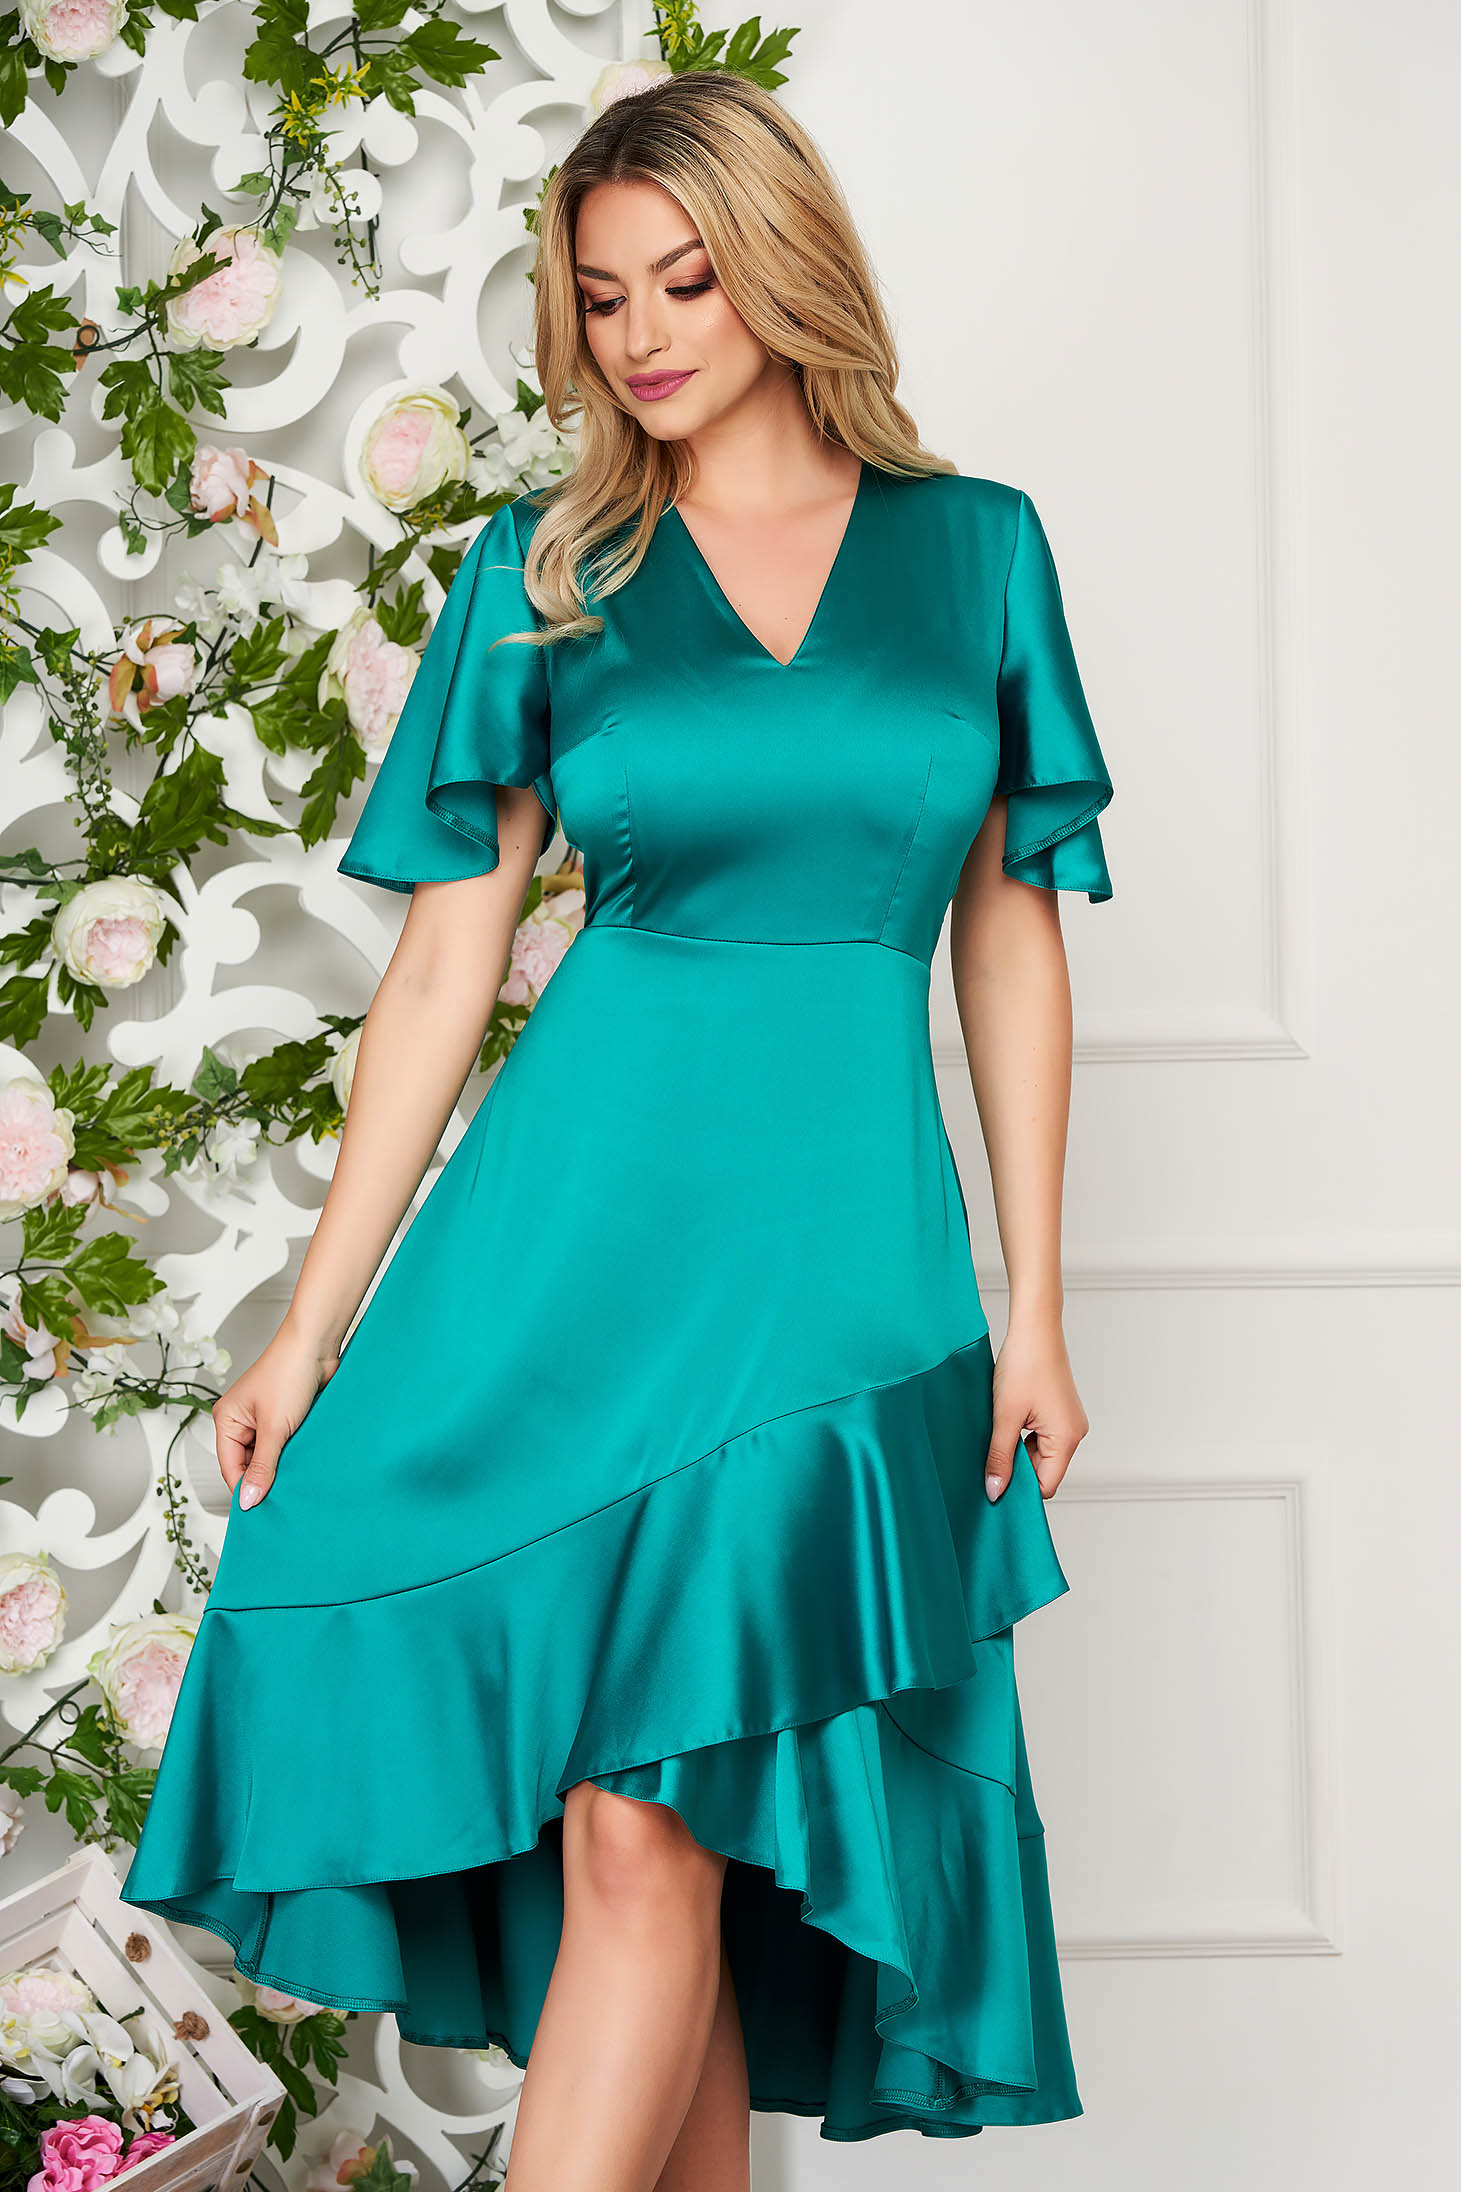 Green dress daily midi asymmetrical from satin with v-neckline with butterfly sleeves with ruffles at the buttom of the dress